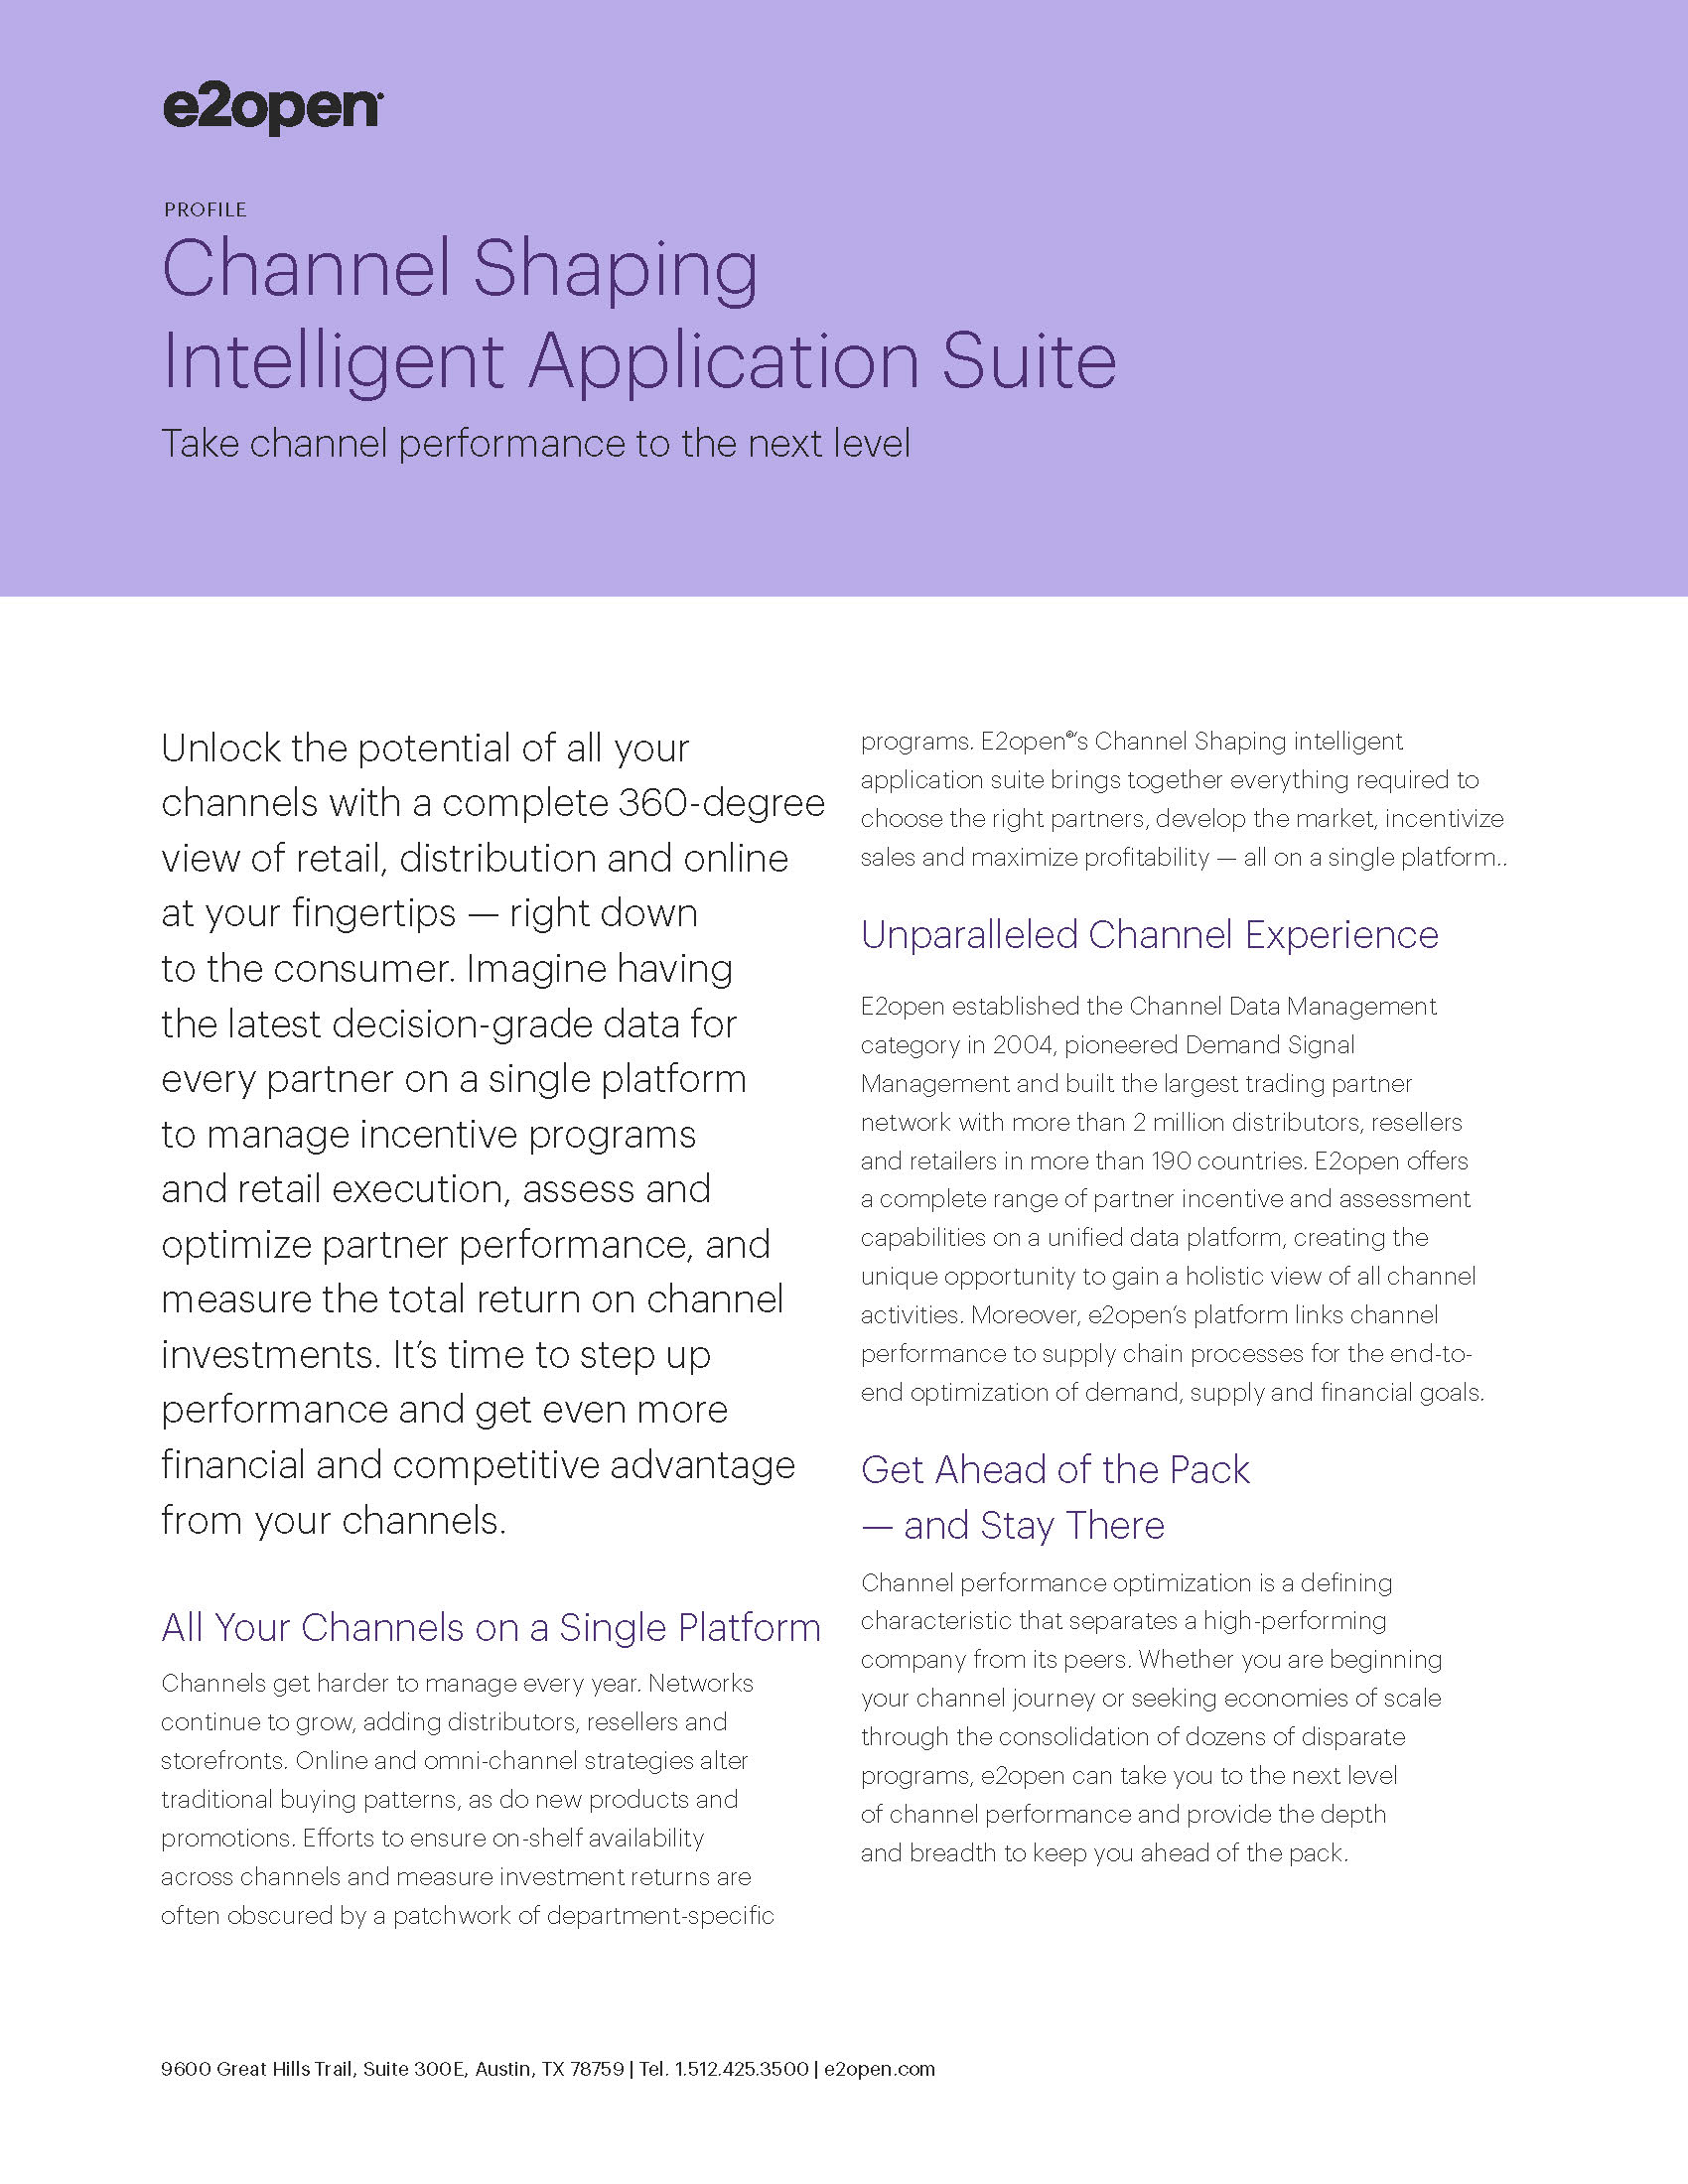 Channel Shaping Intelligent Application Suite Profile